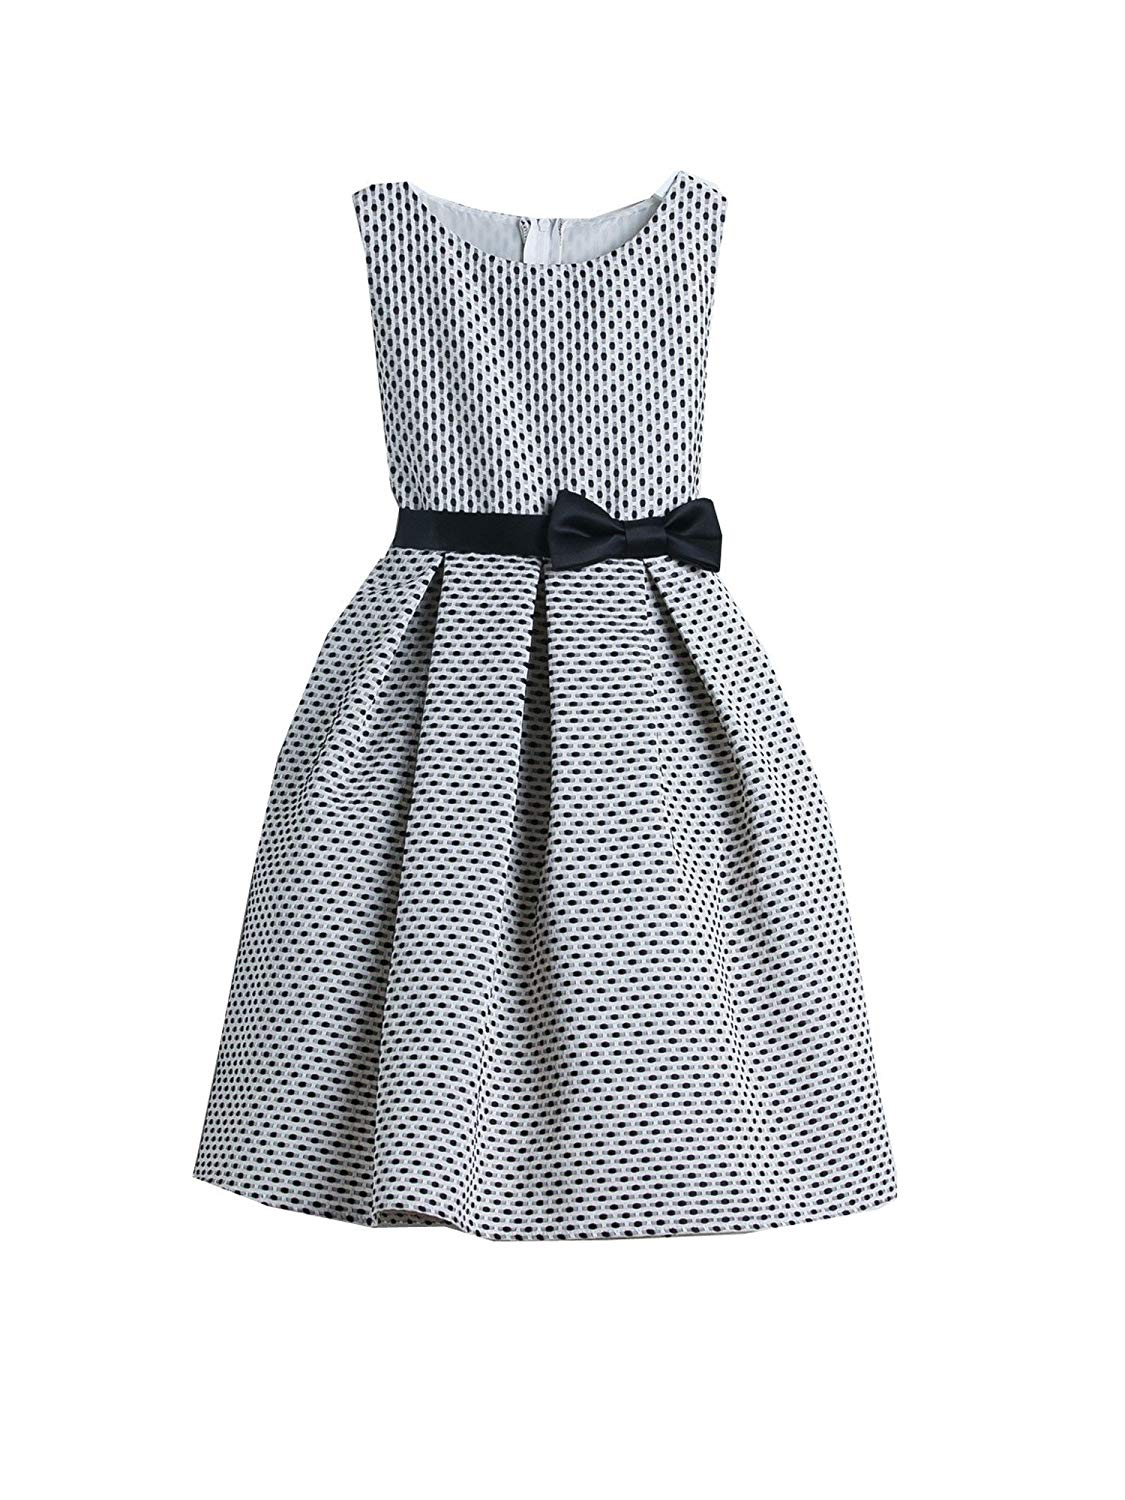 Cheap Black And White Polka Dot Flower Girl Dresses Find Black And